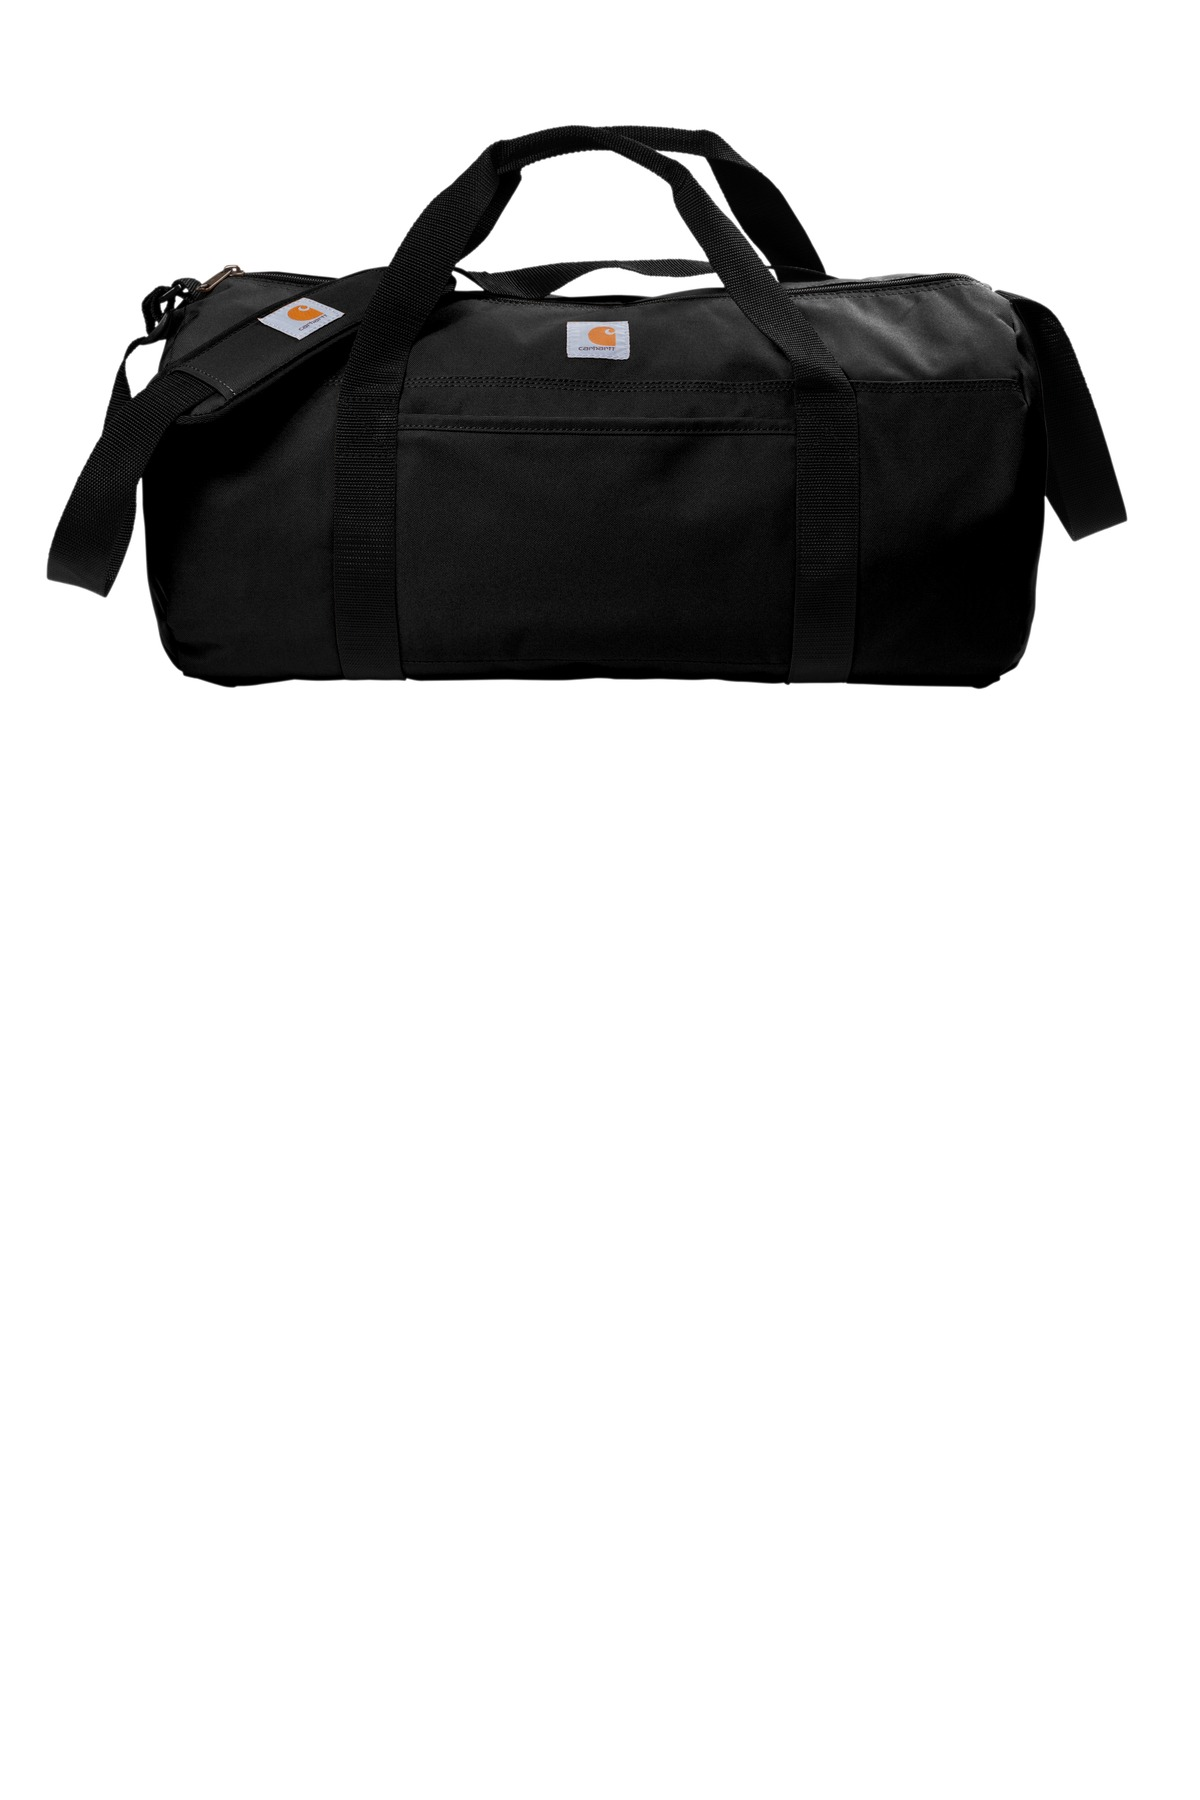 Carhartt ®   Canvas Packable Duffel with Pouch. CT89105112 - Black